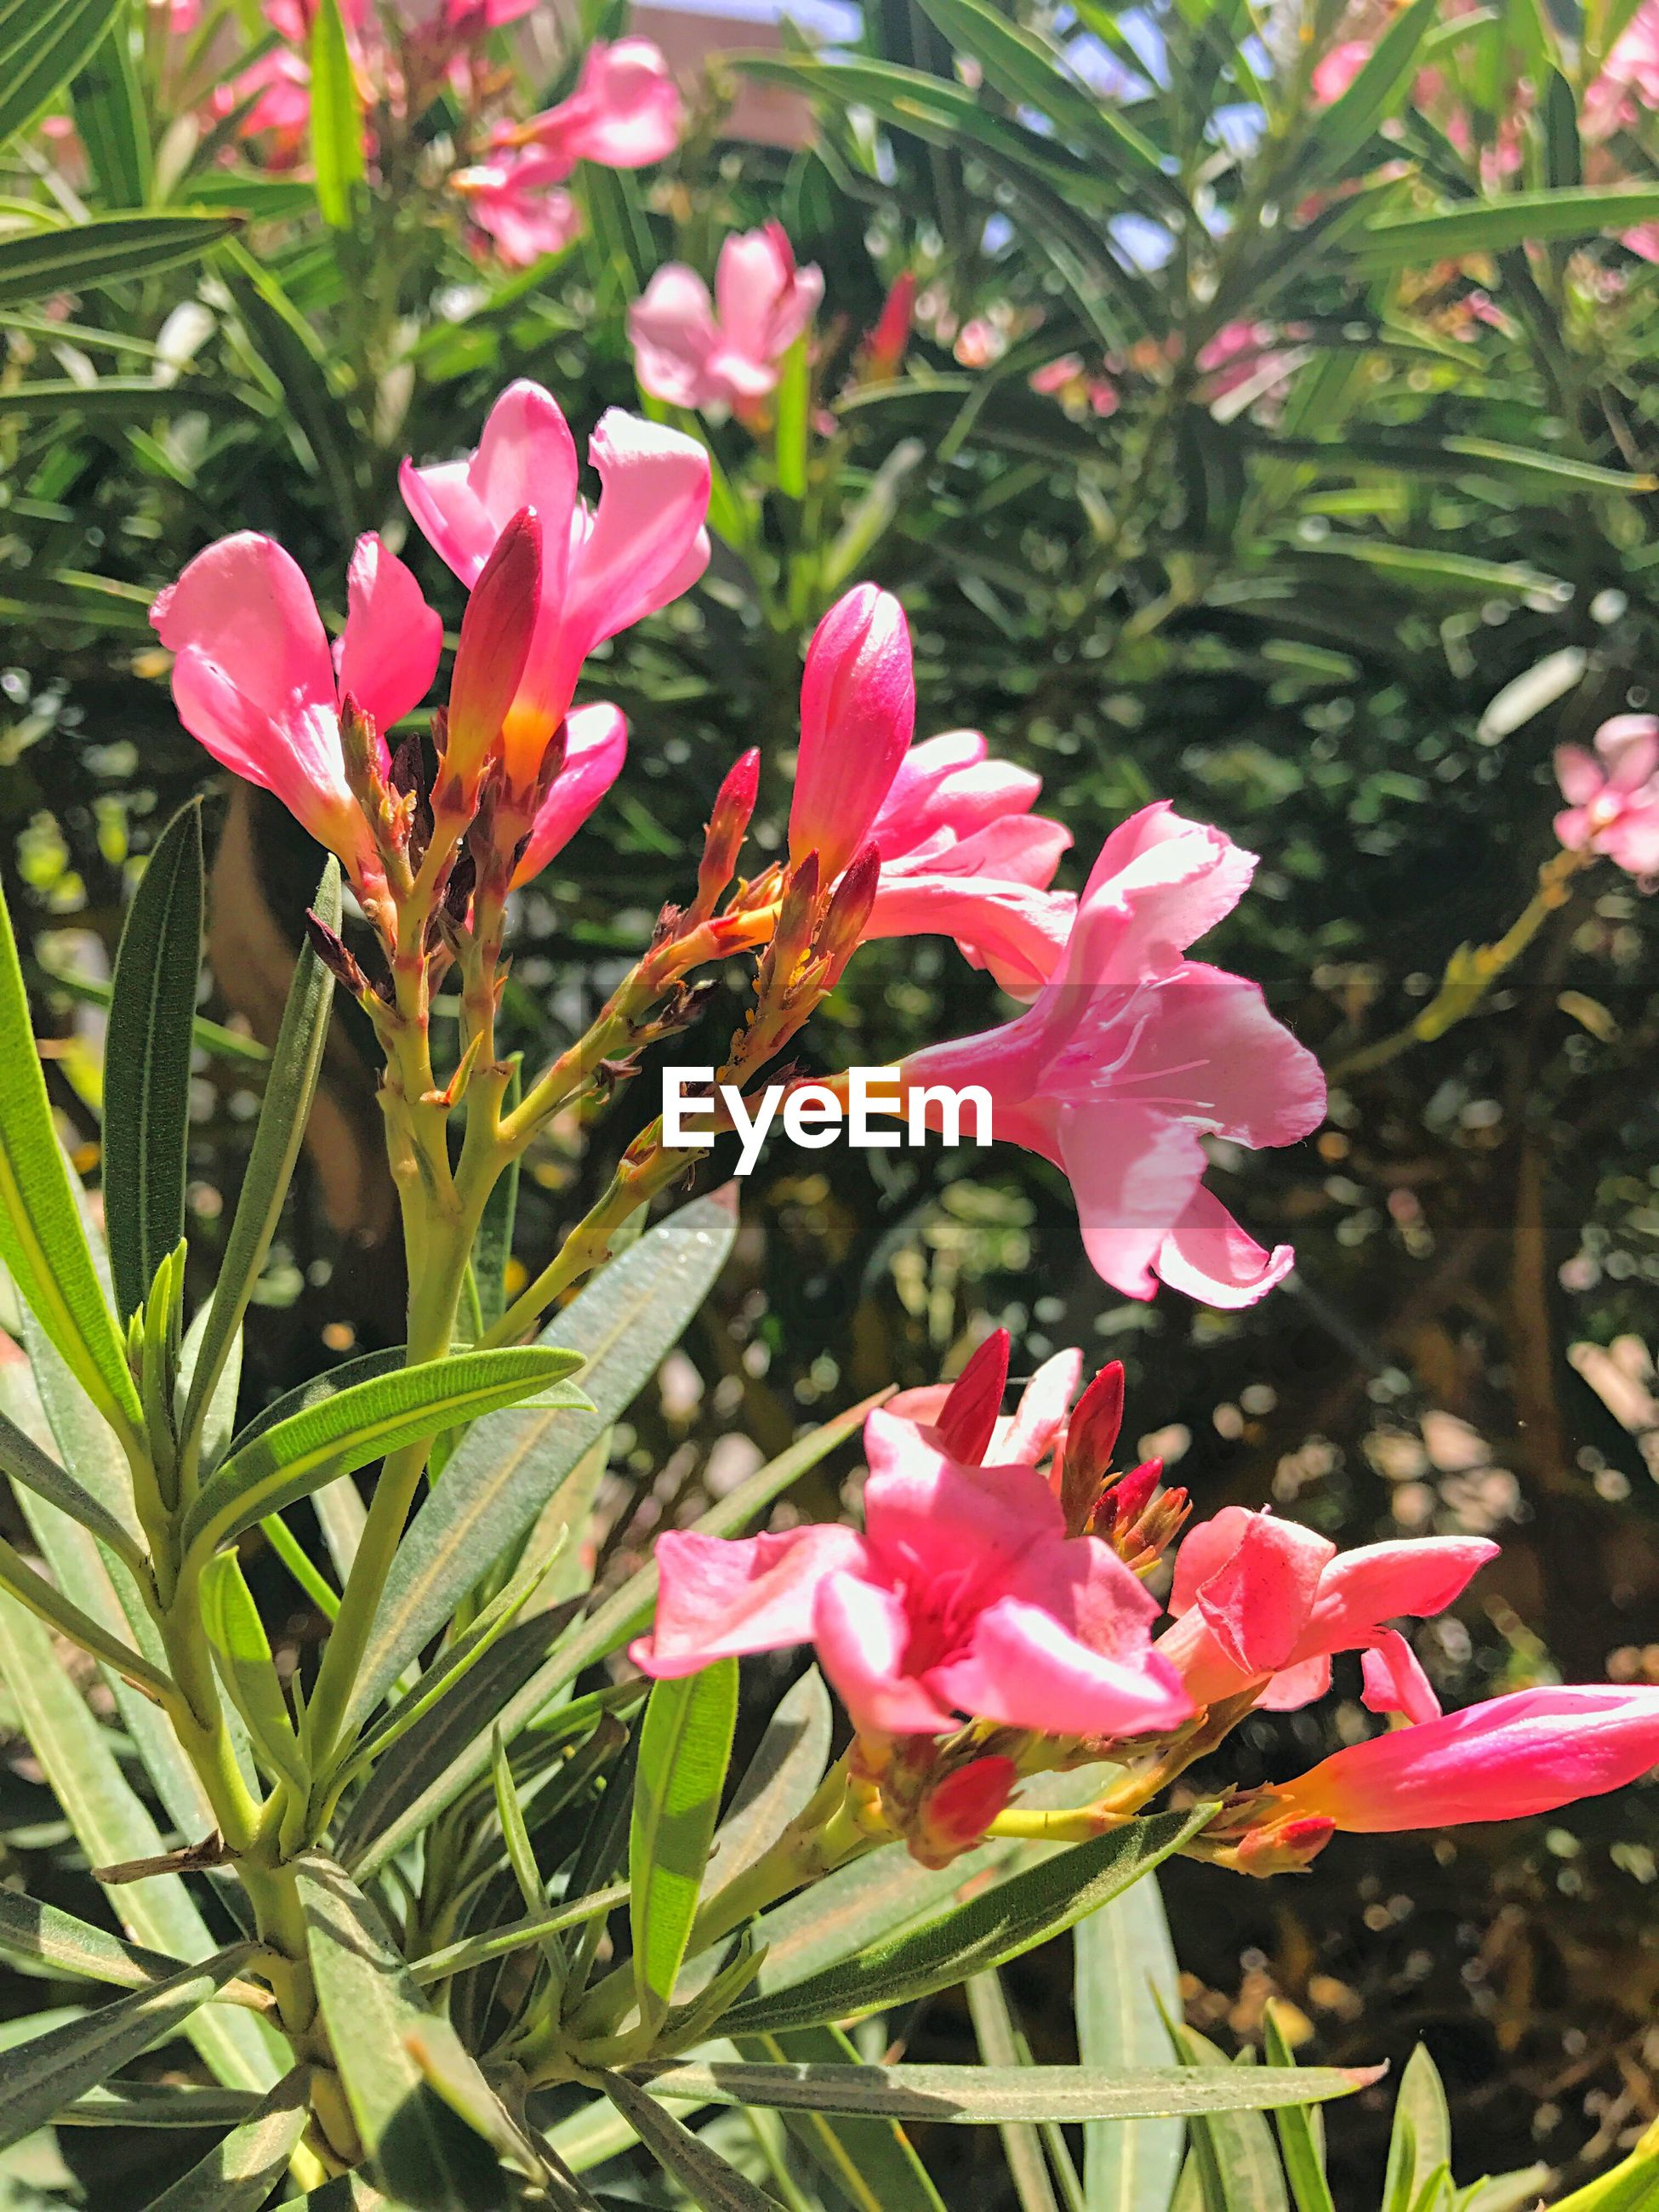 flower, growth, nature, beauty in nature, petal, pink color, plant, fragility, close-up, freshness, blooming, day, rhododendron, no people, leaf, flower head, pollen, outdoors